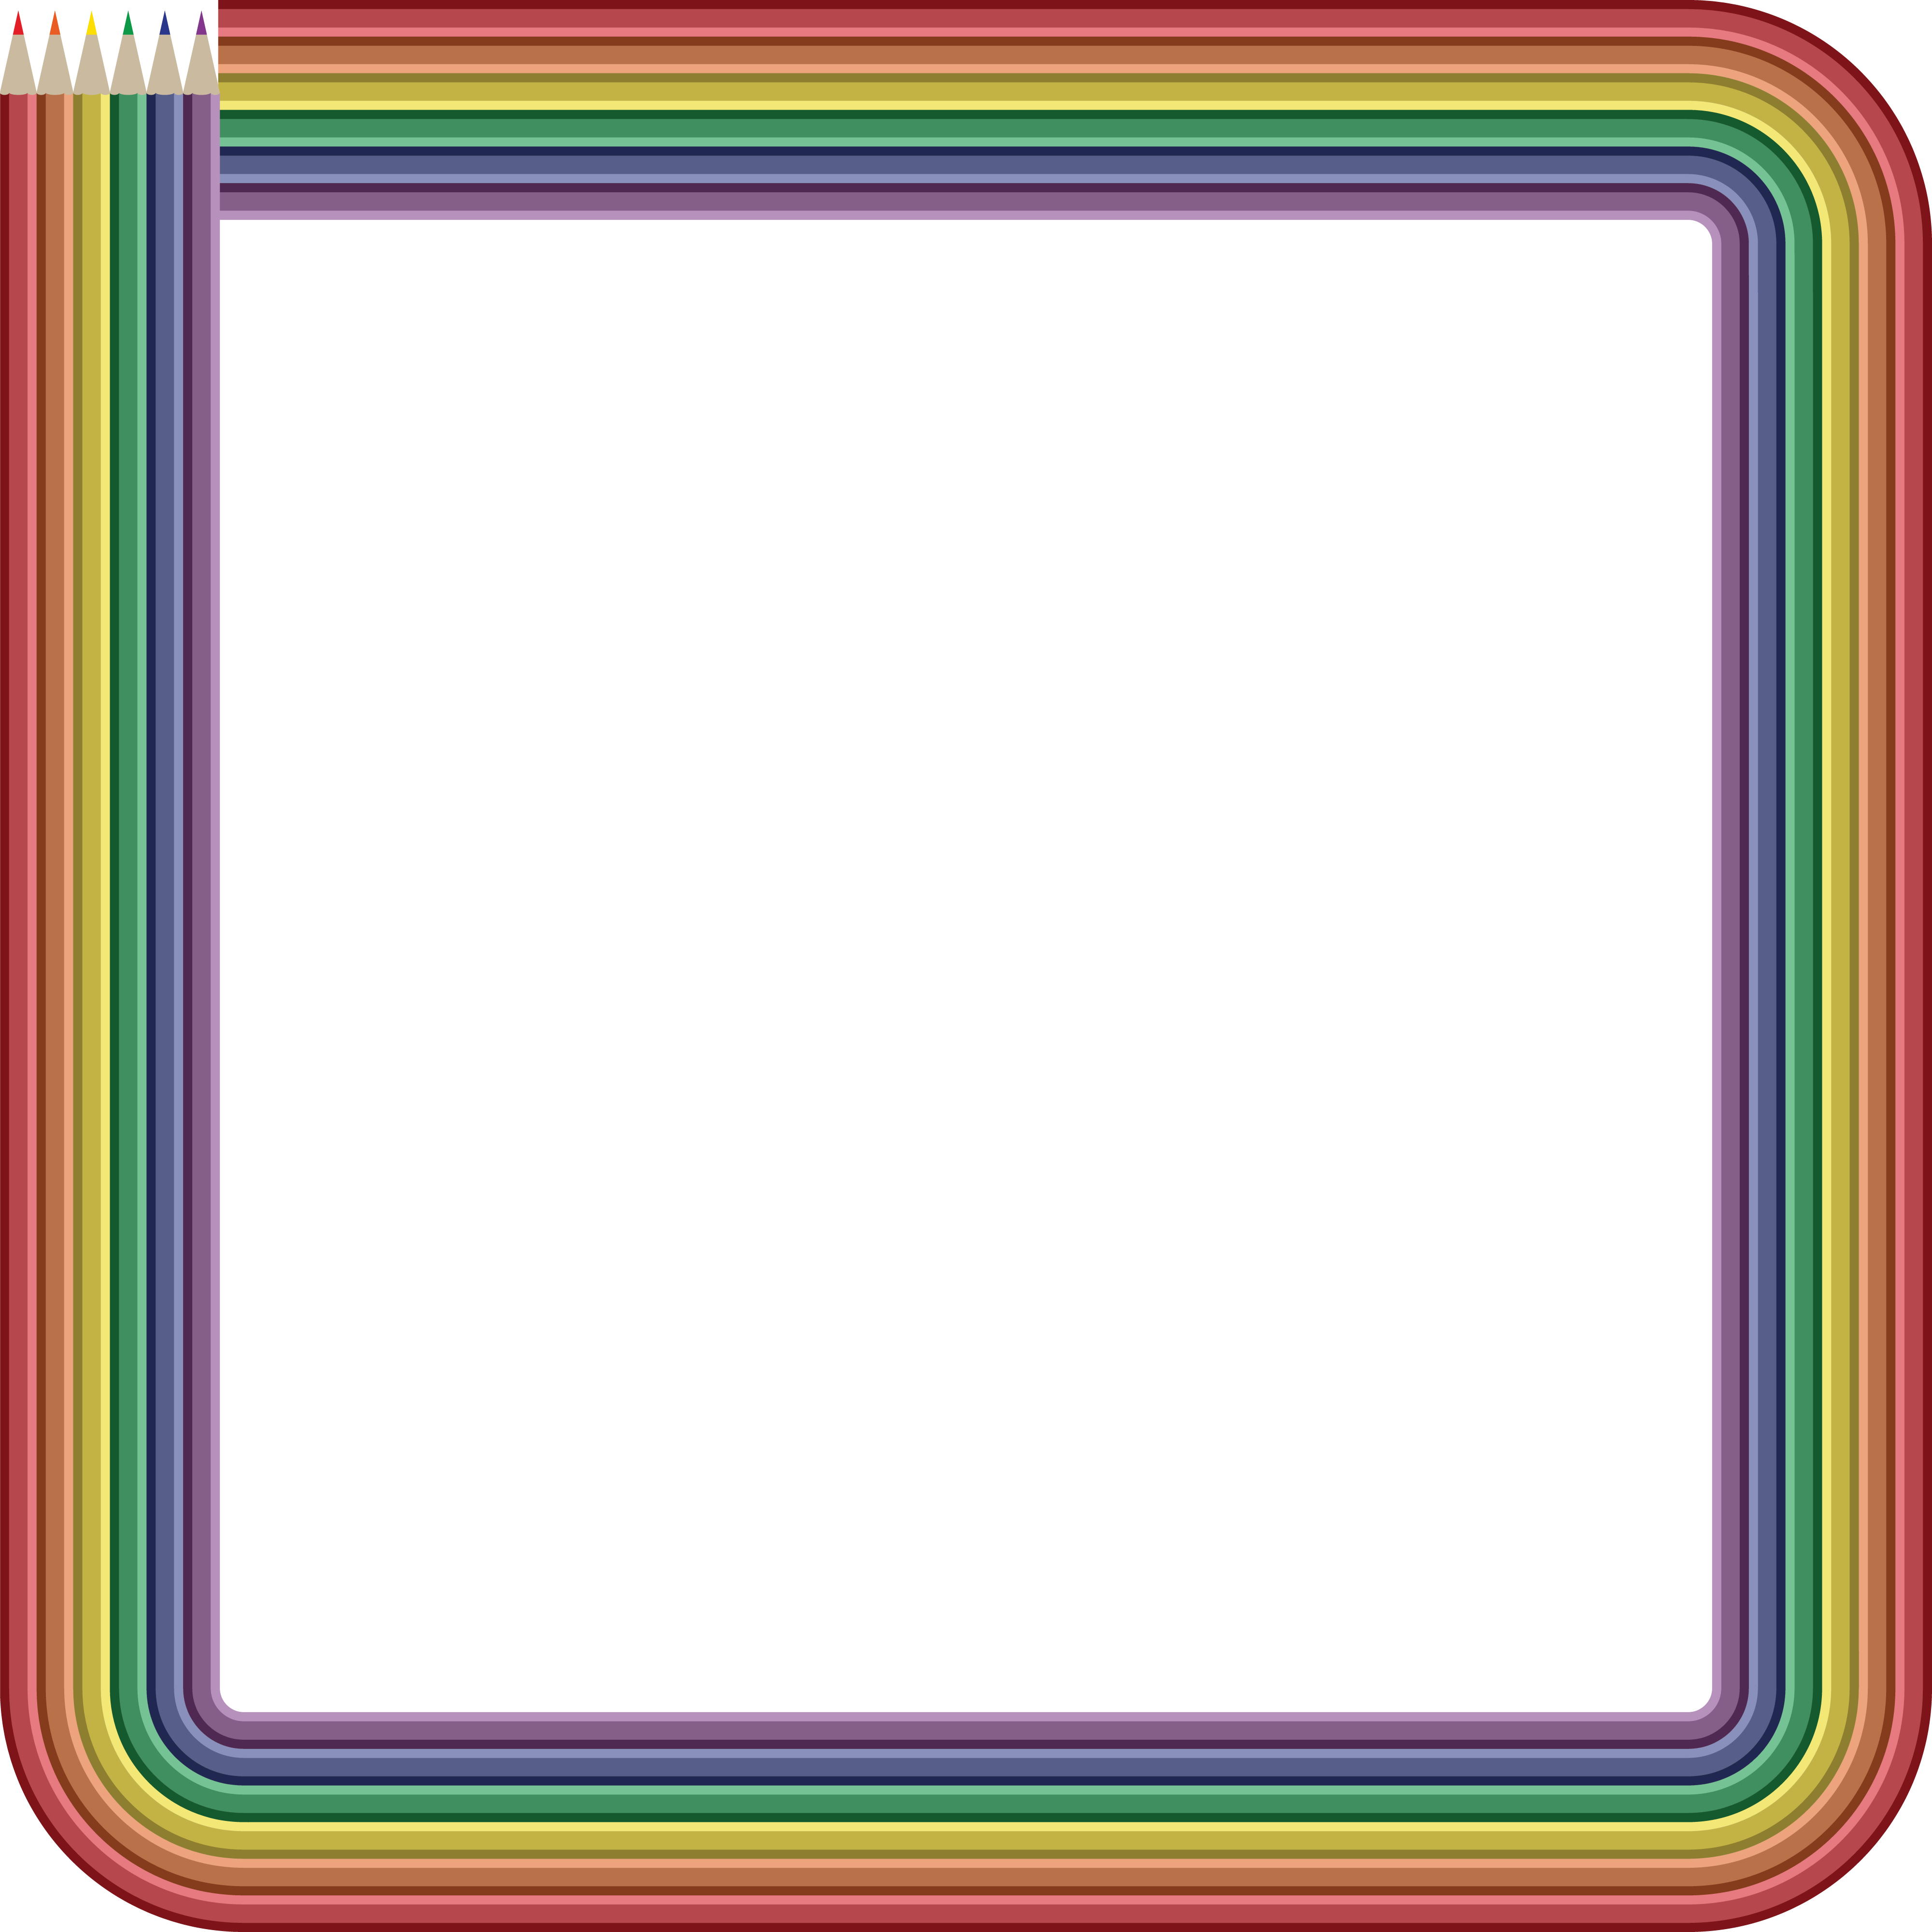 Color frame png. Colored pencil clipart at